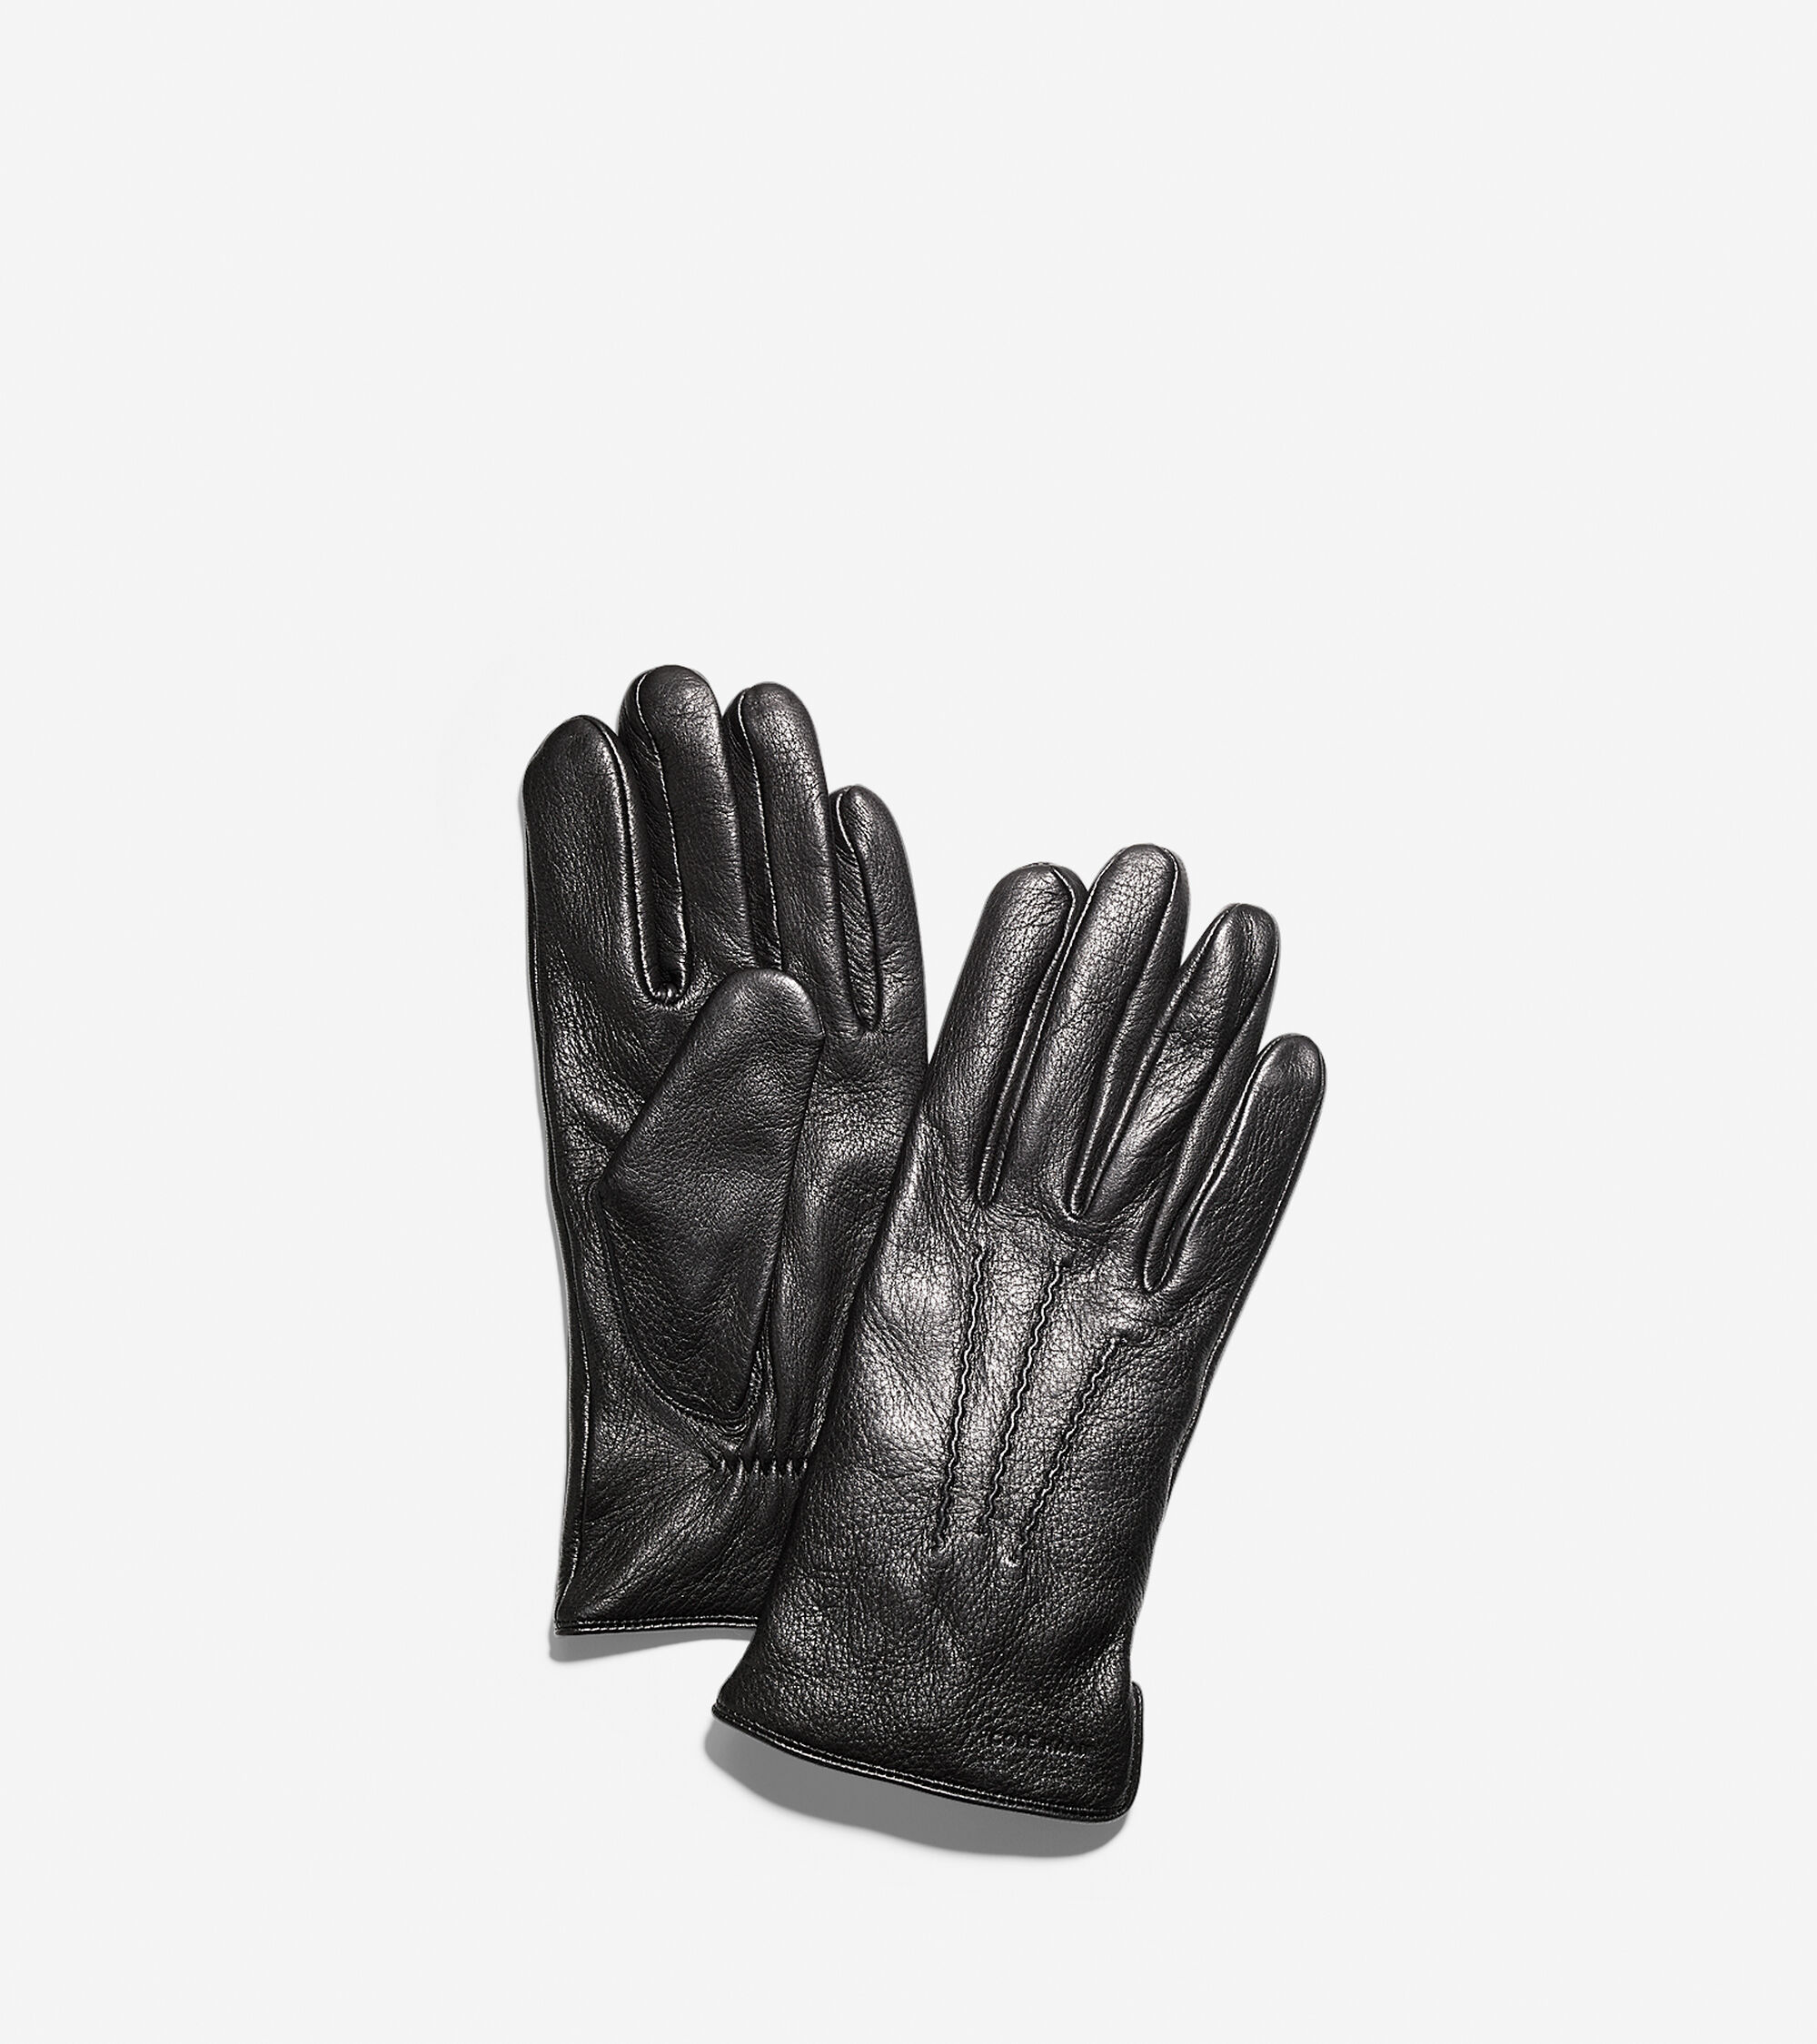 Cole haan black leather gloves - Classic Deerskin Glove Classic Deerskin Glove Colehaan